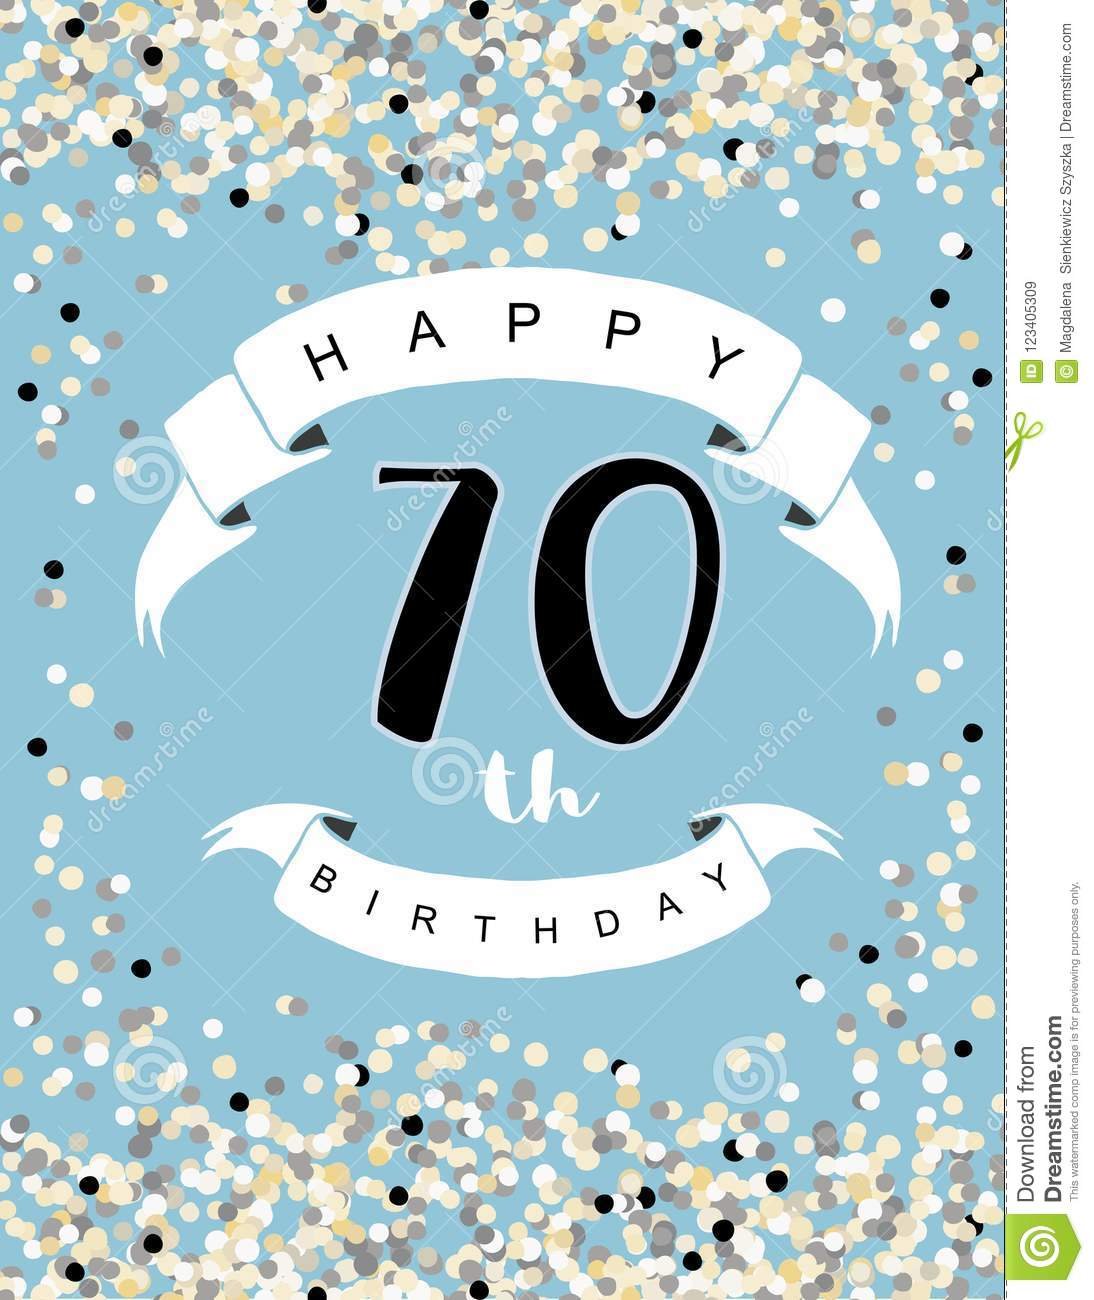 Happy 70th Birthday Vector Illustration Blue Background With Light Confetti White Ribbons And Black